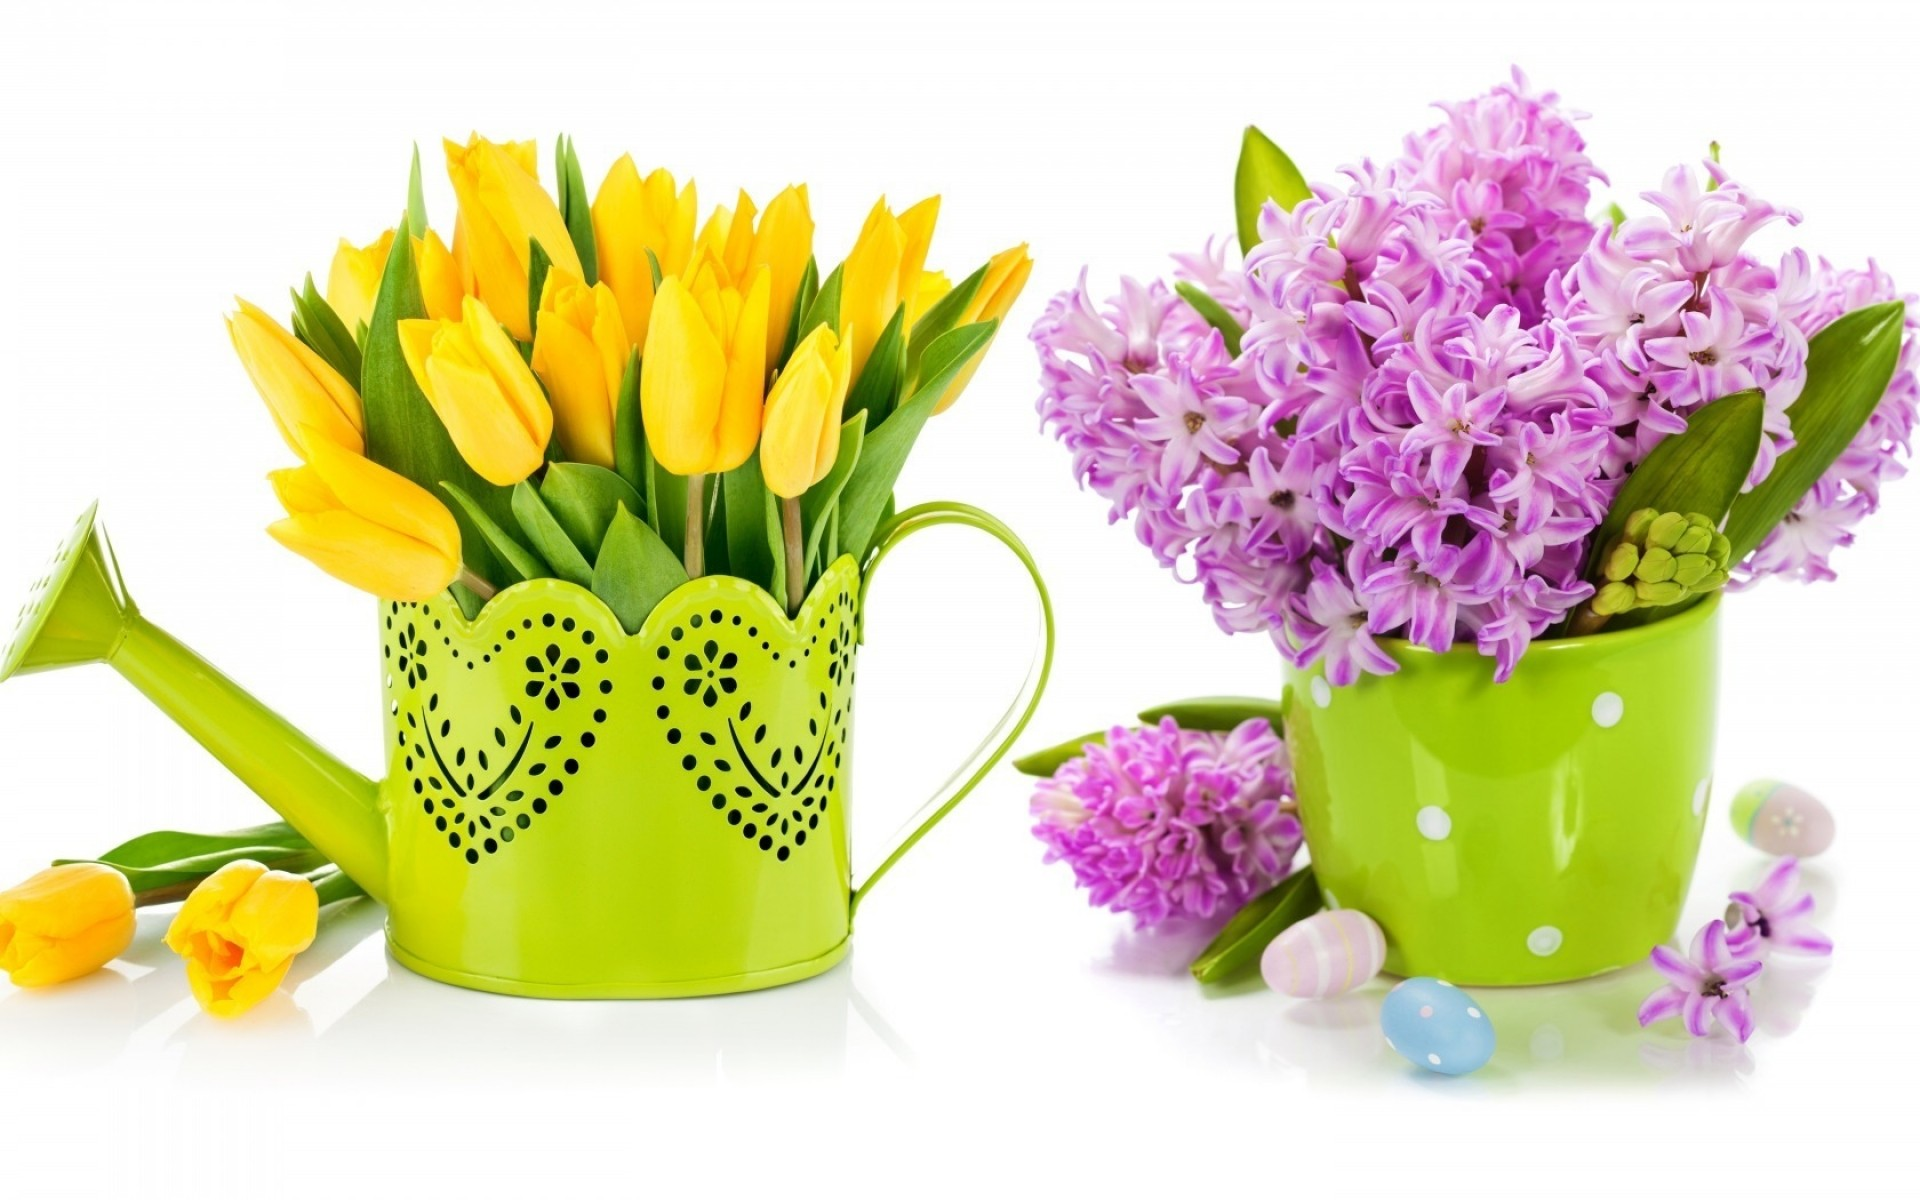 flowers easter flower bouquet floral leaf flora nature vase tulip cluster gift bright isolated birthday color blooming decoration pot lilac purple lilac tulips yellow tulips spring